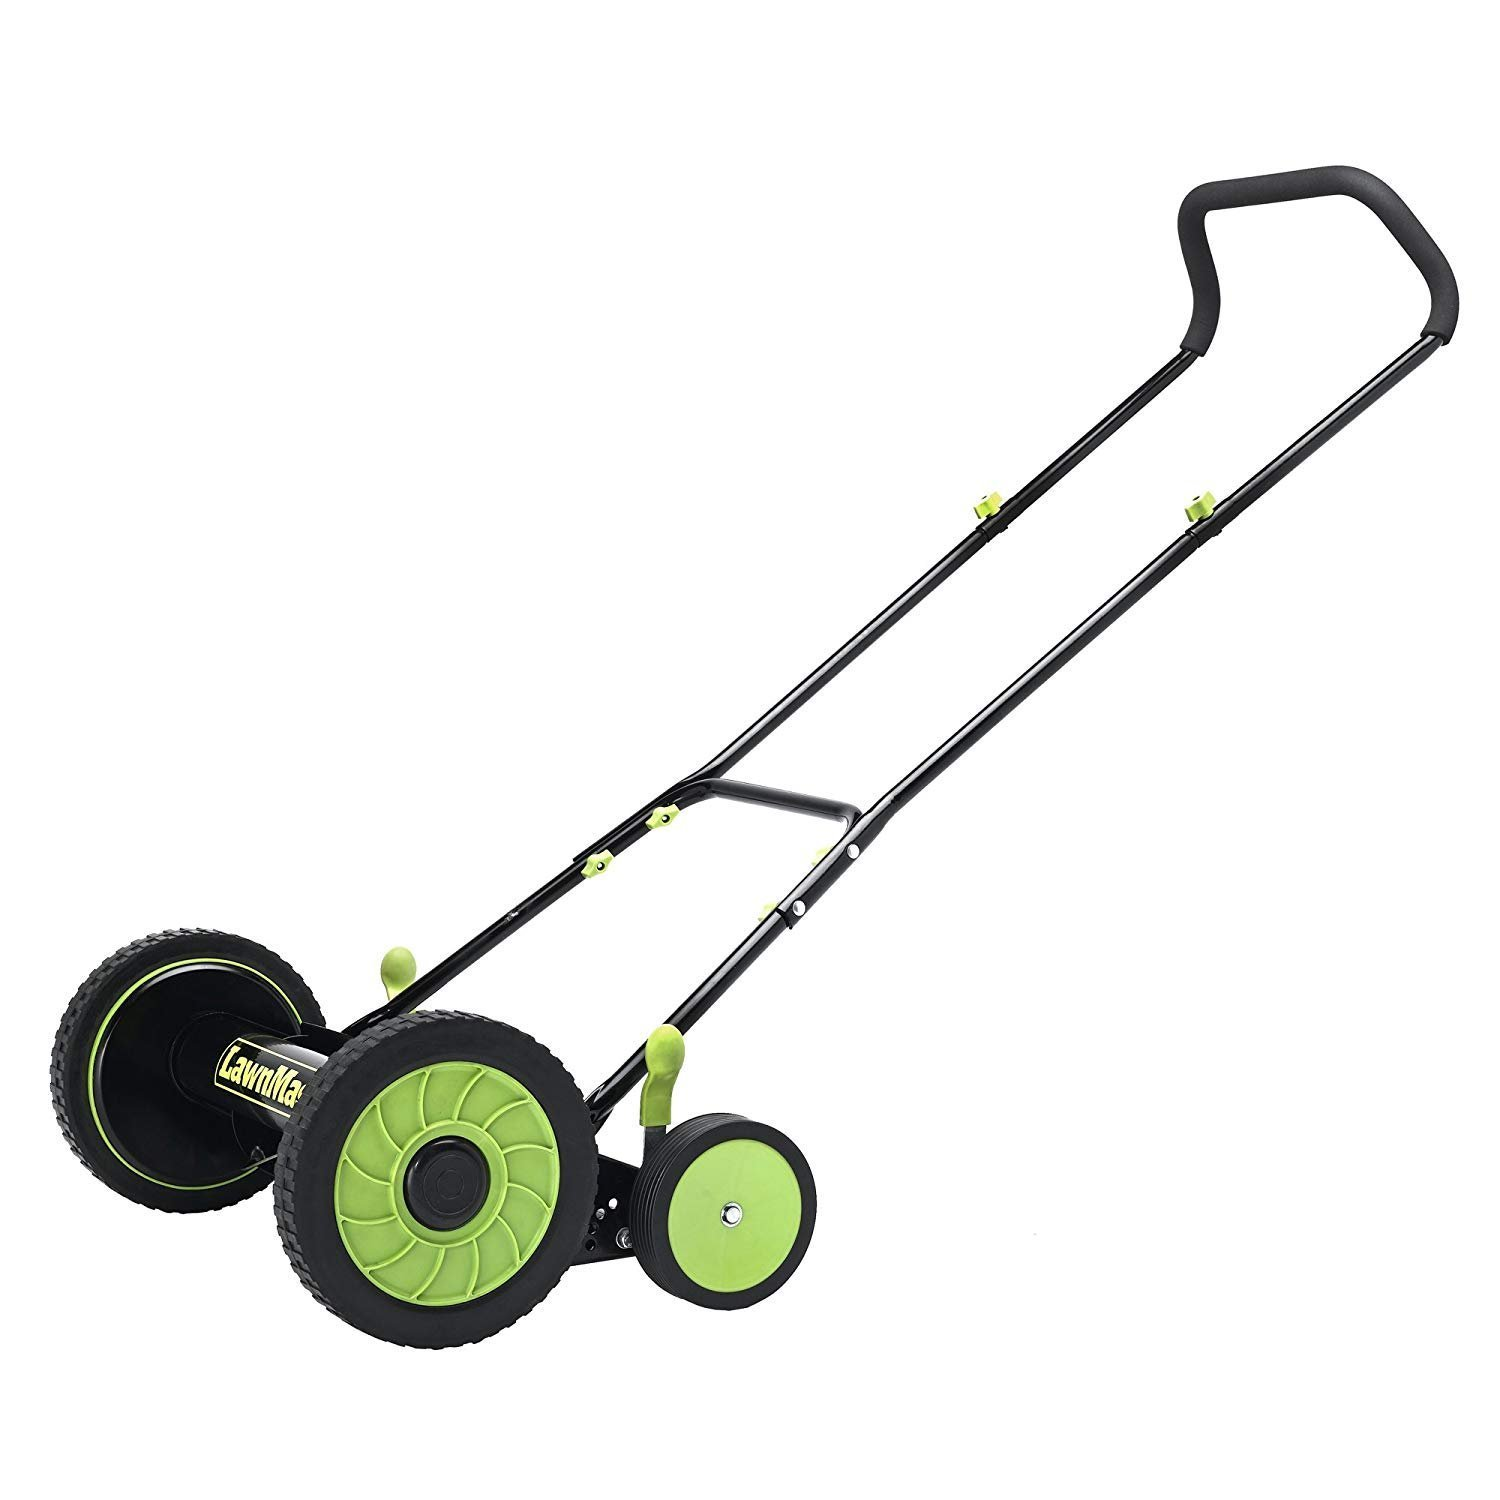 LawnMaster LMRM1601 16″ Push Reel Mower Review